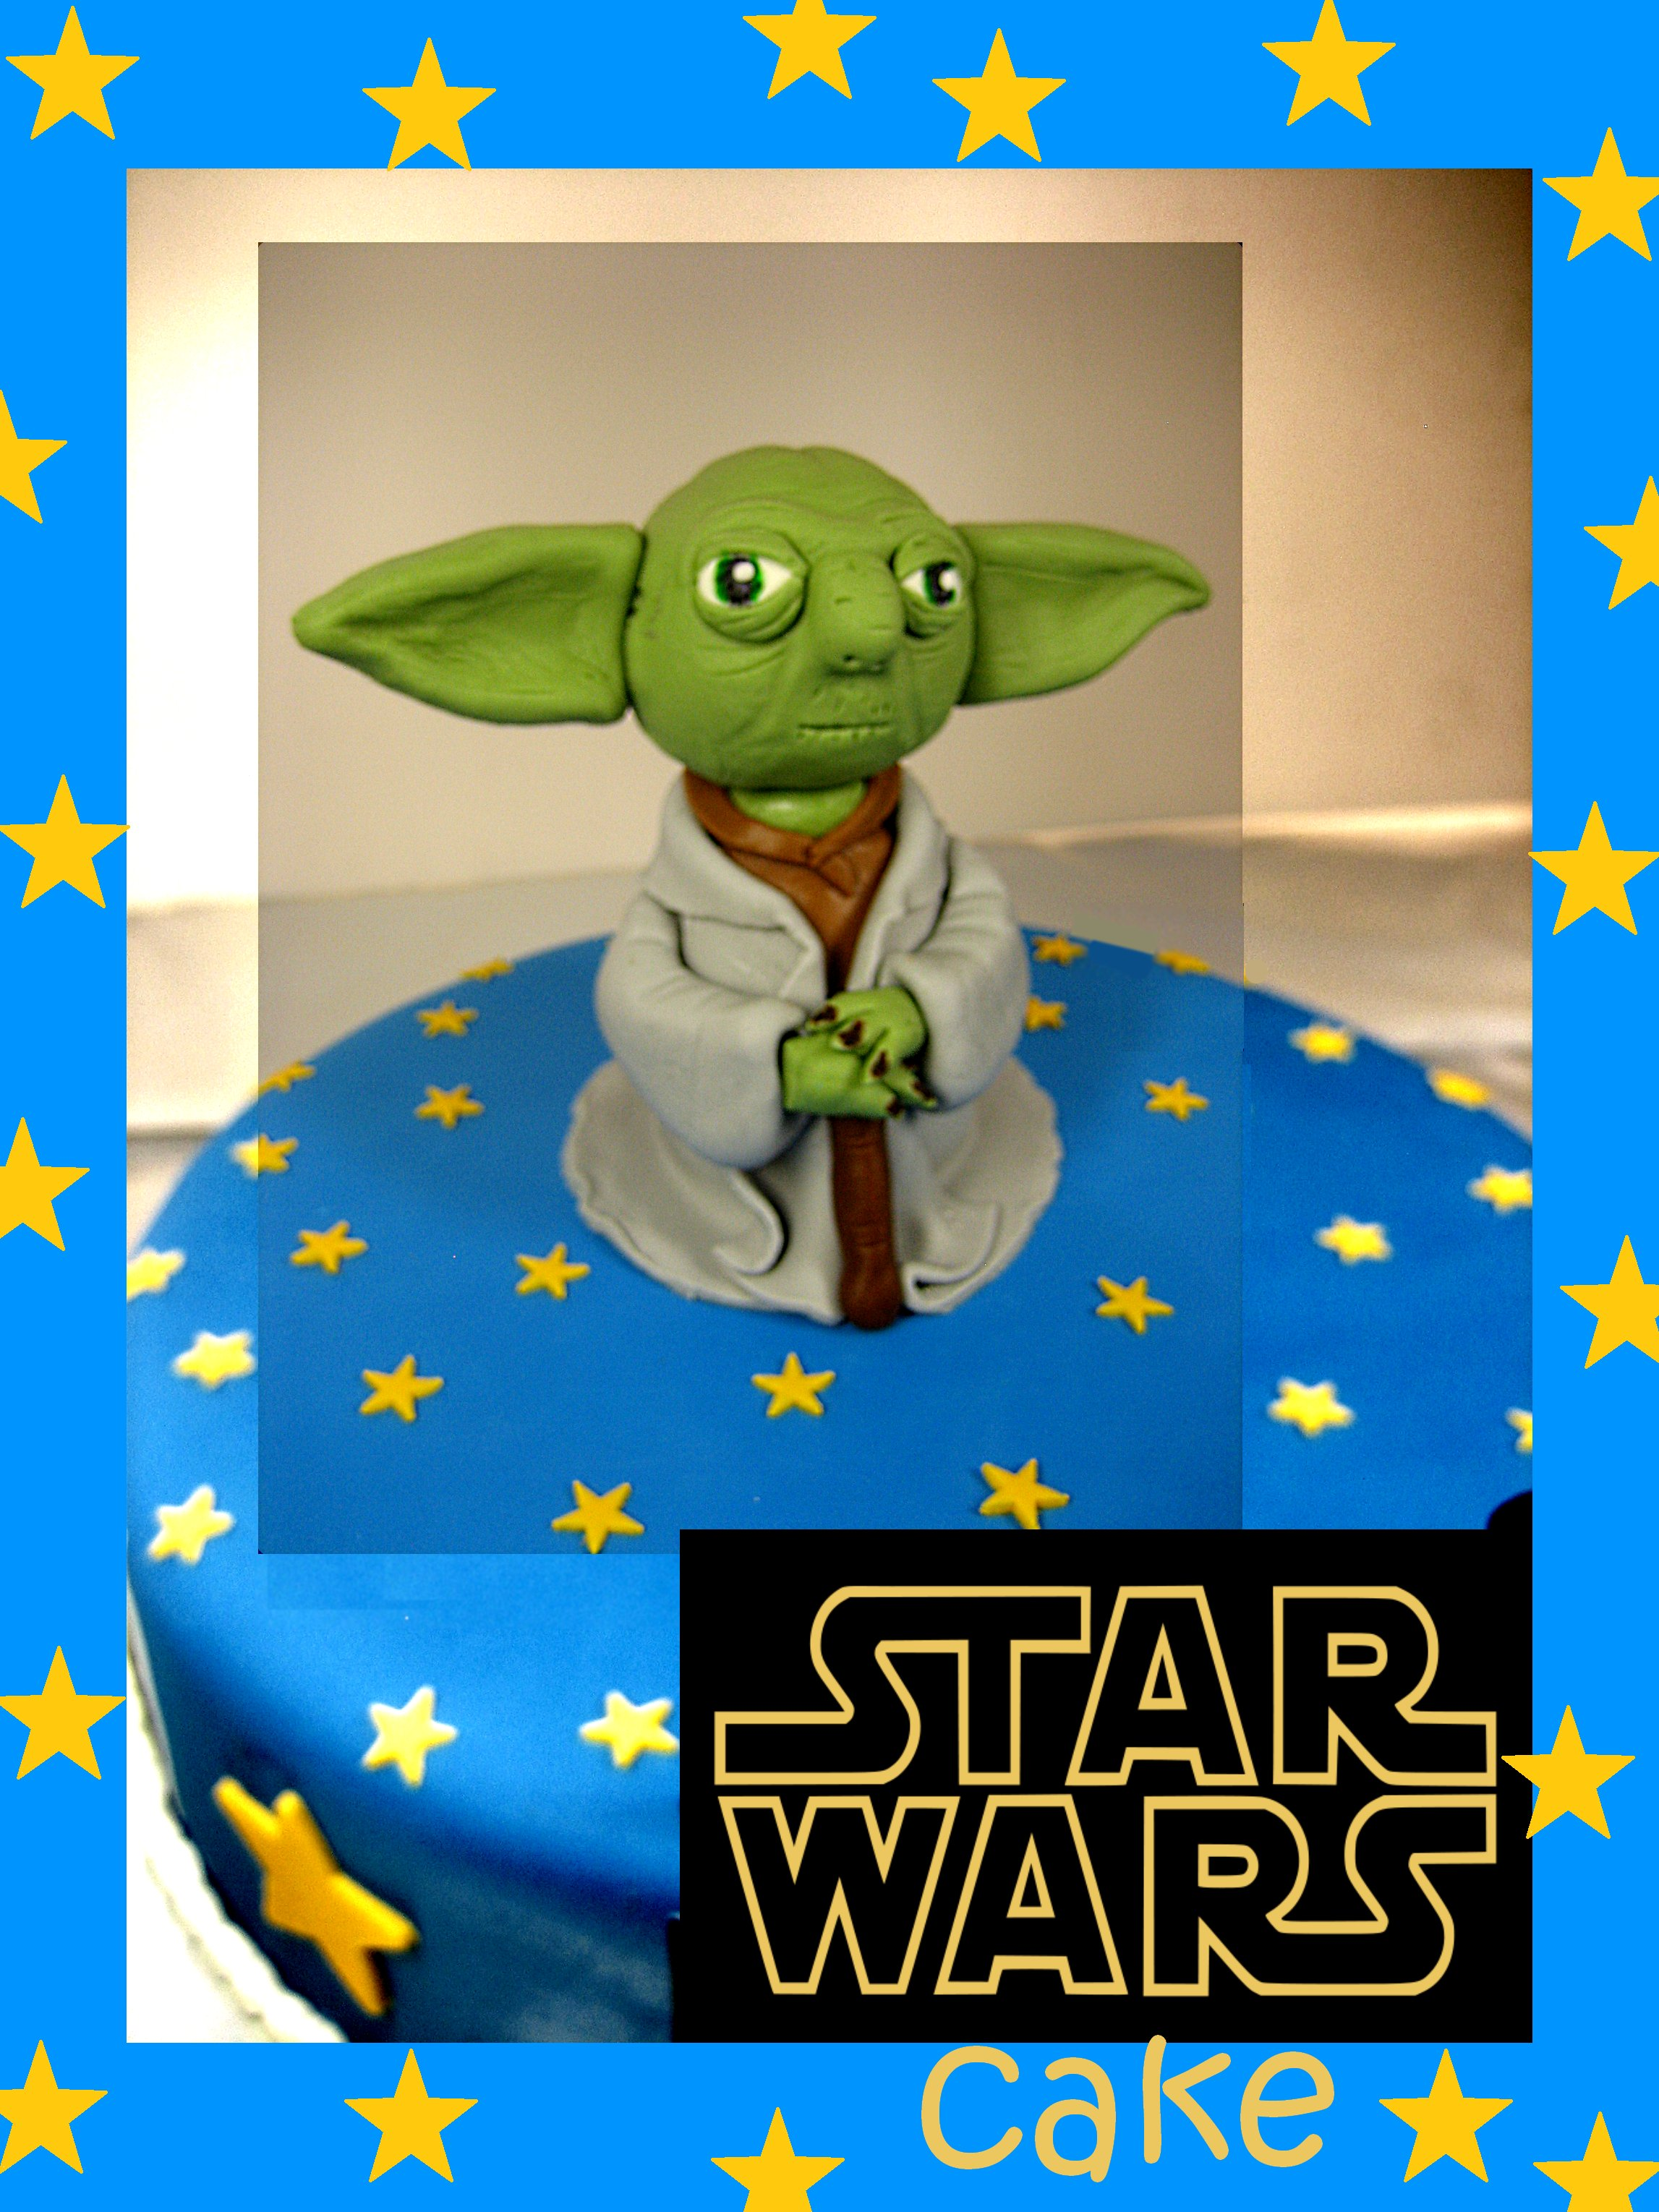 yoda-star-Happy-birthday-themed-cake